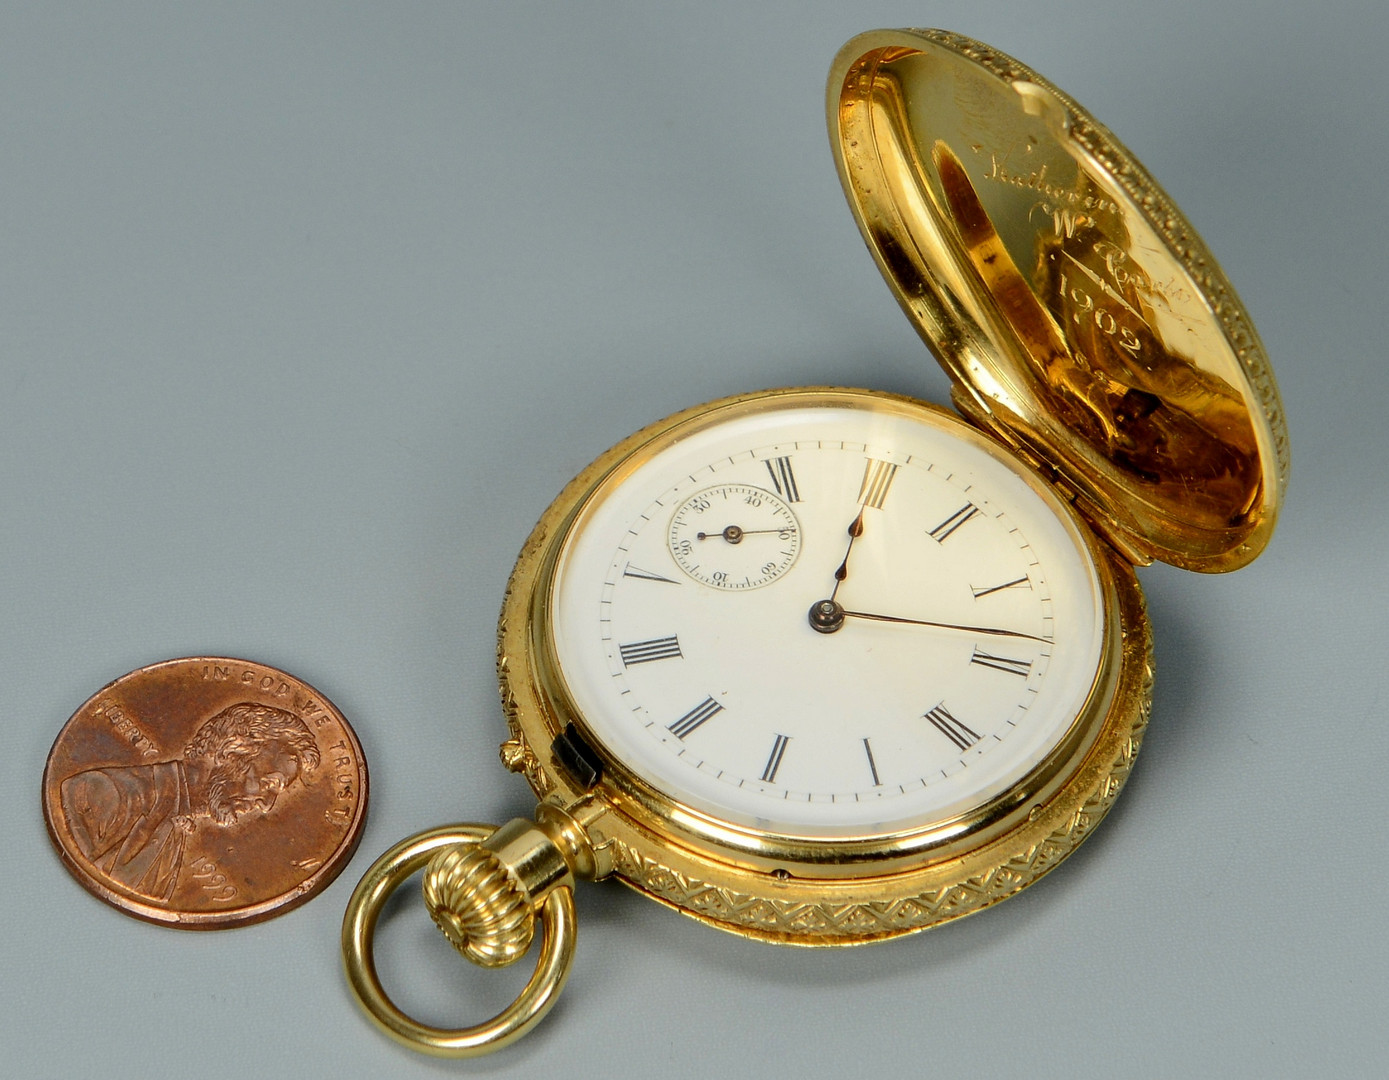 Lot 271: A. Golay Leresche & Fils 18k Pocketwatch